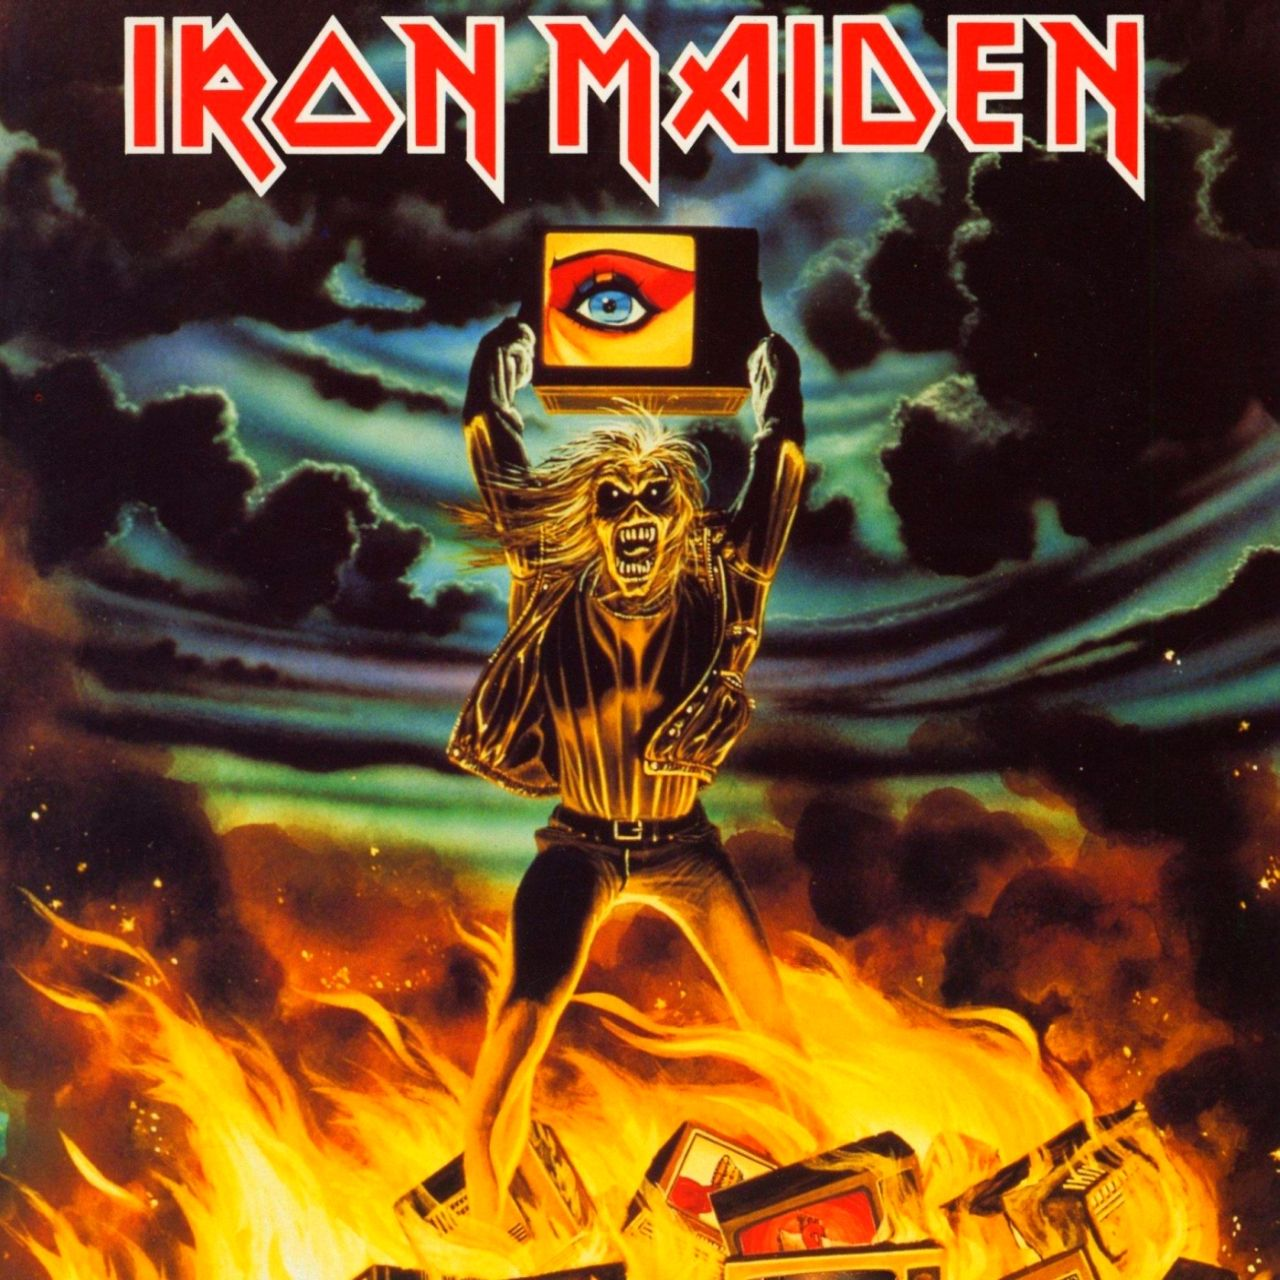 maiden rock personals One of the first groups to be classified as british metal, iron maiden helped set the rock scene for the a double-live album featuring their biggest hit singles.